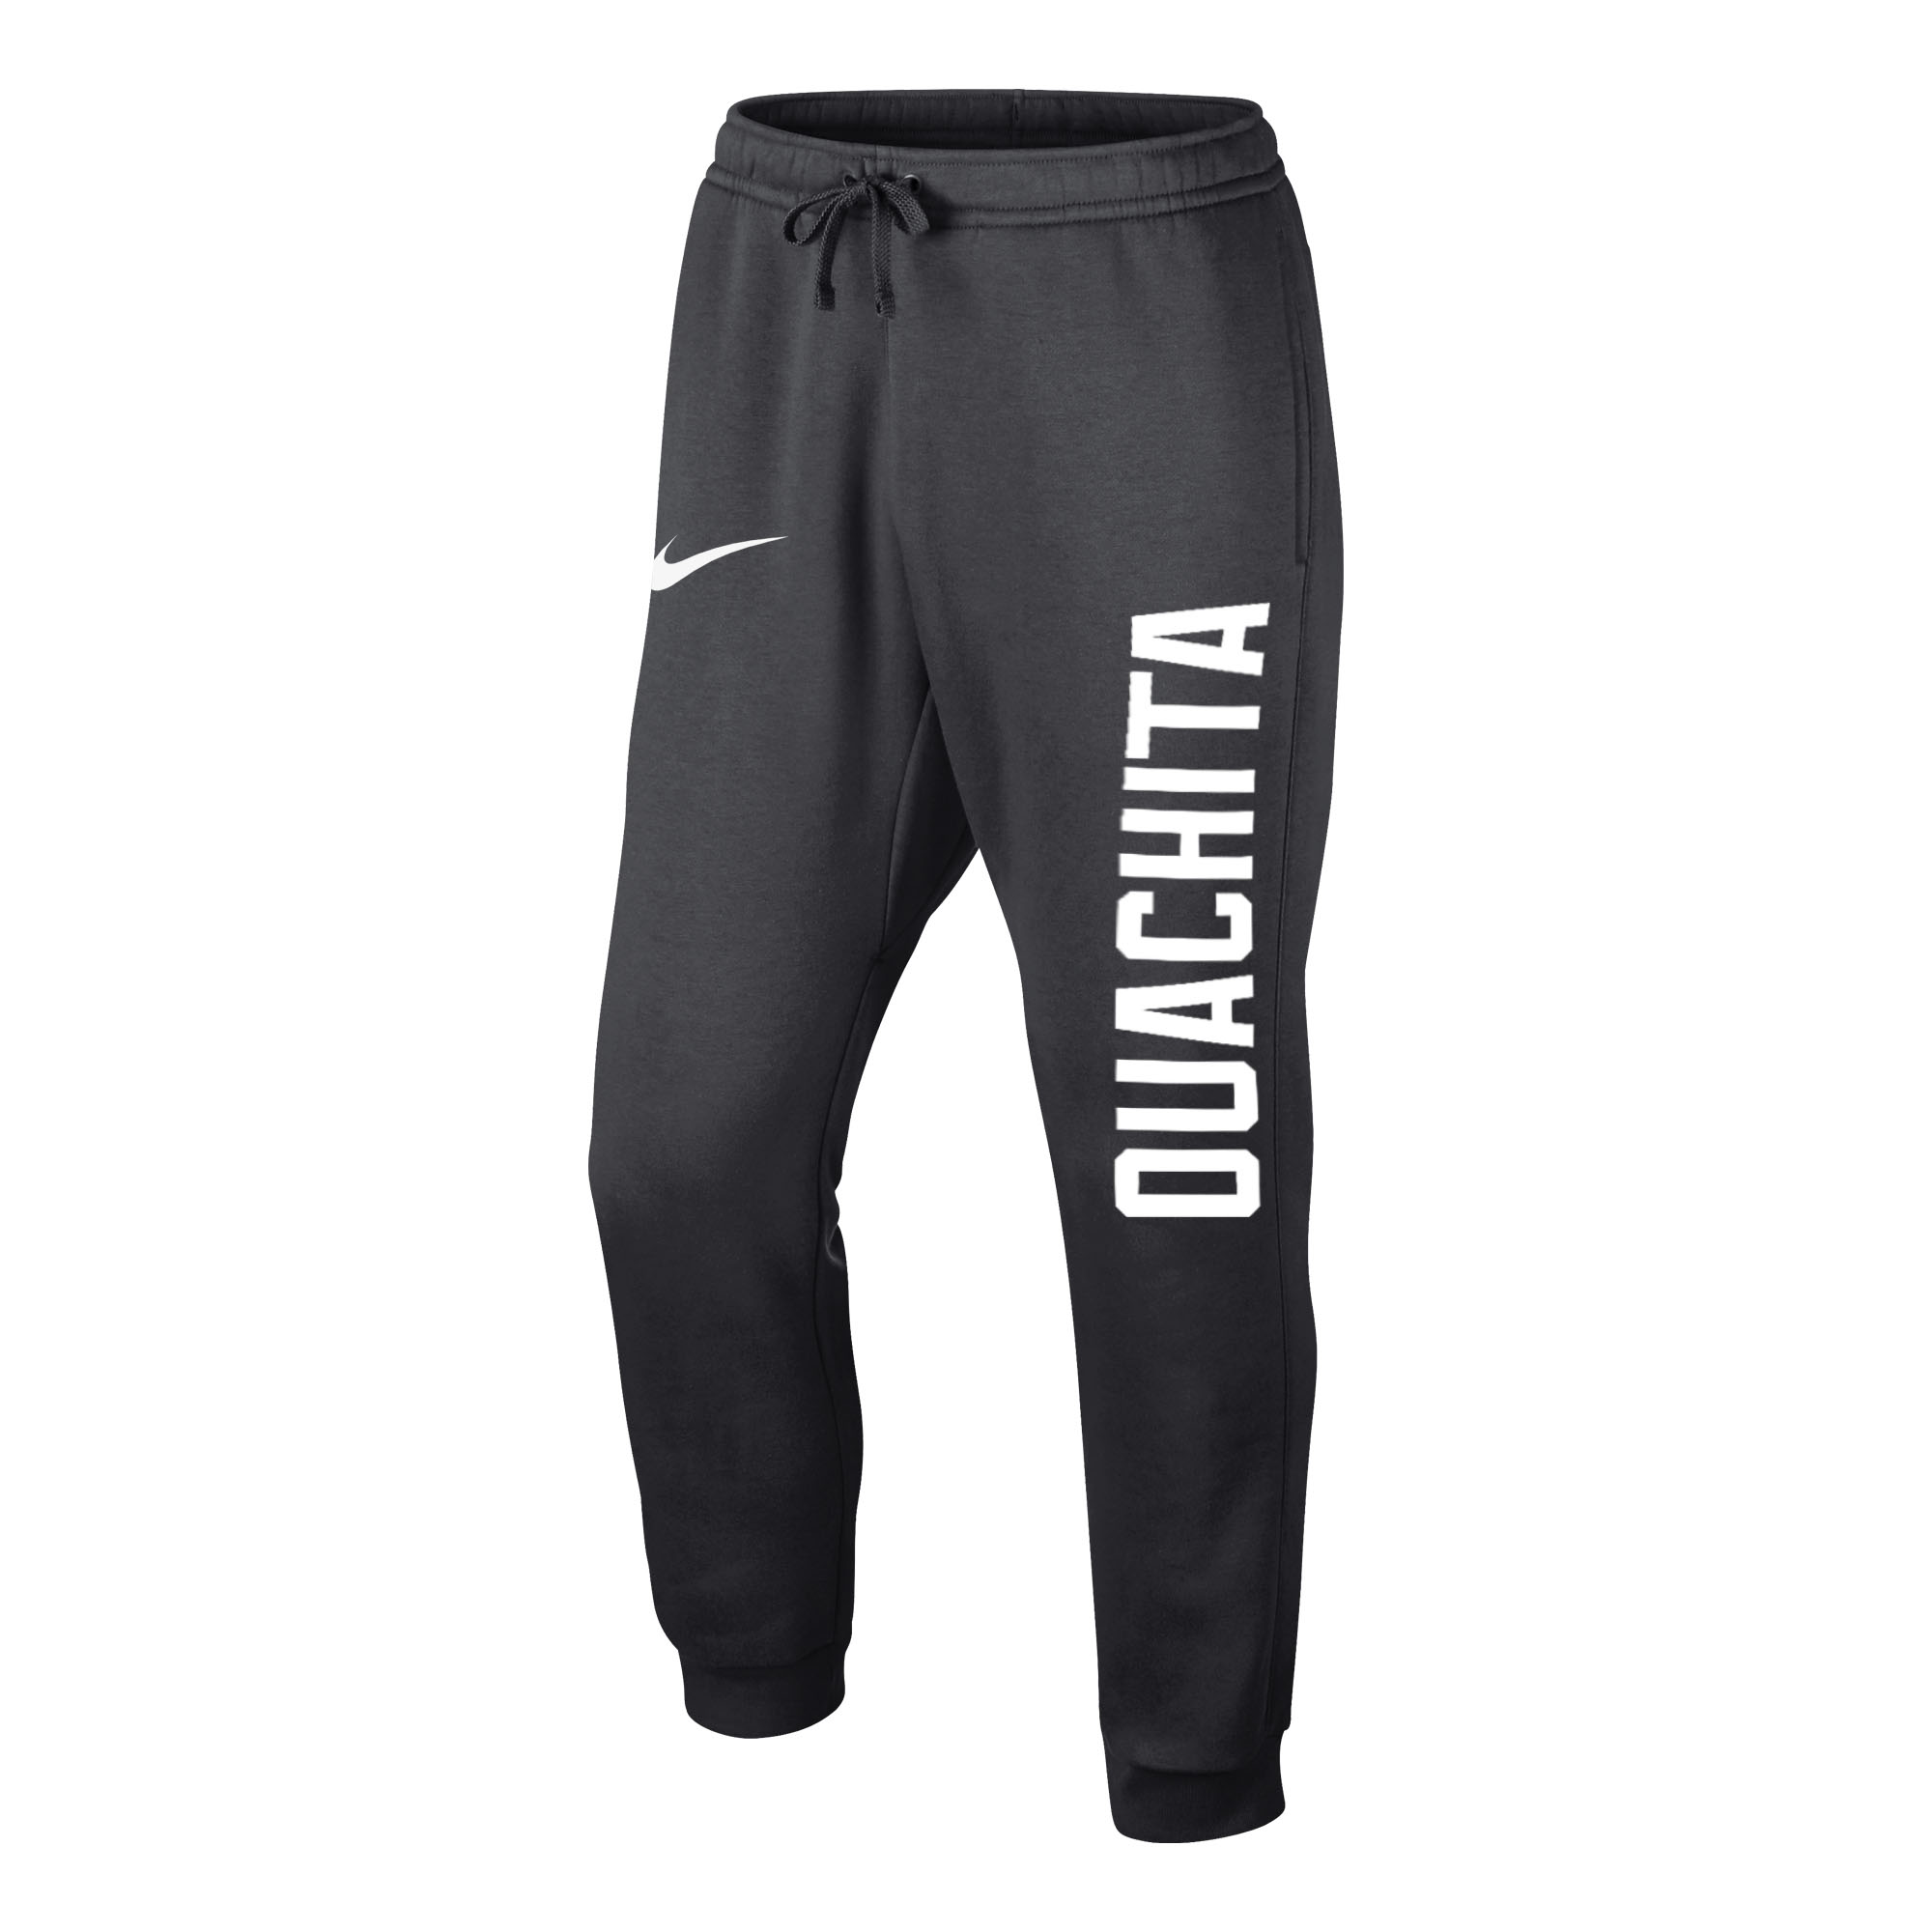 OUACHITA CLUB FLEECE JOGGER